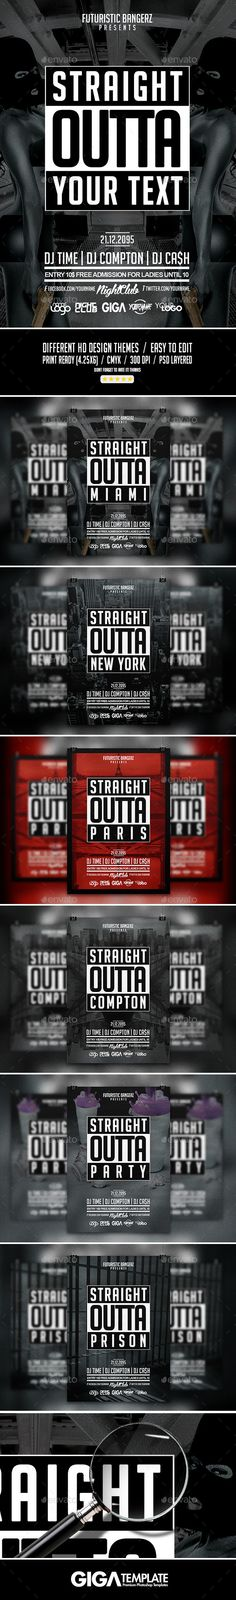 Trap Music Flyer Template http\/\/wwwjustledsza http\/\/www - benefit flyer template